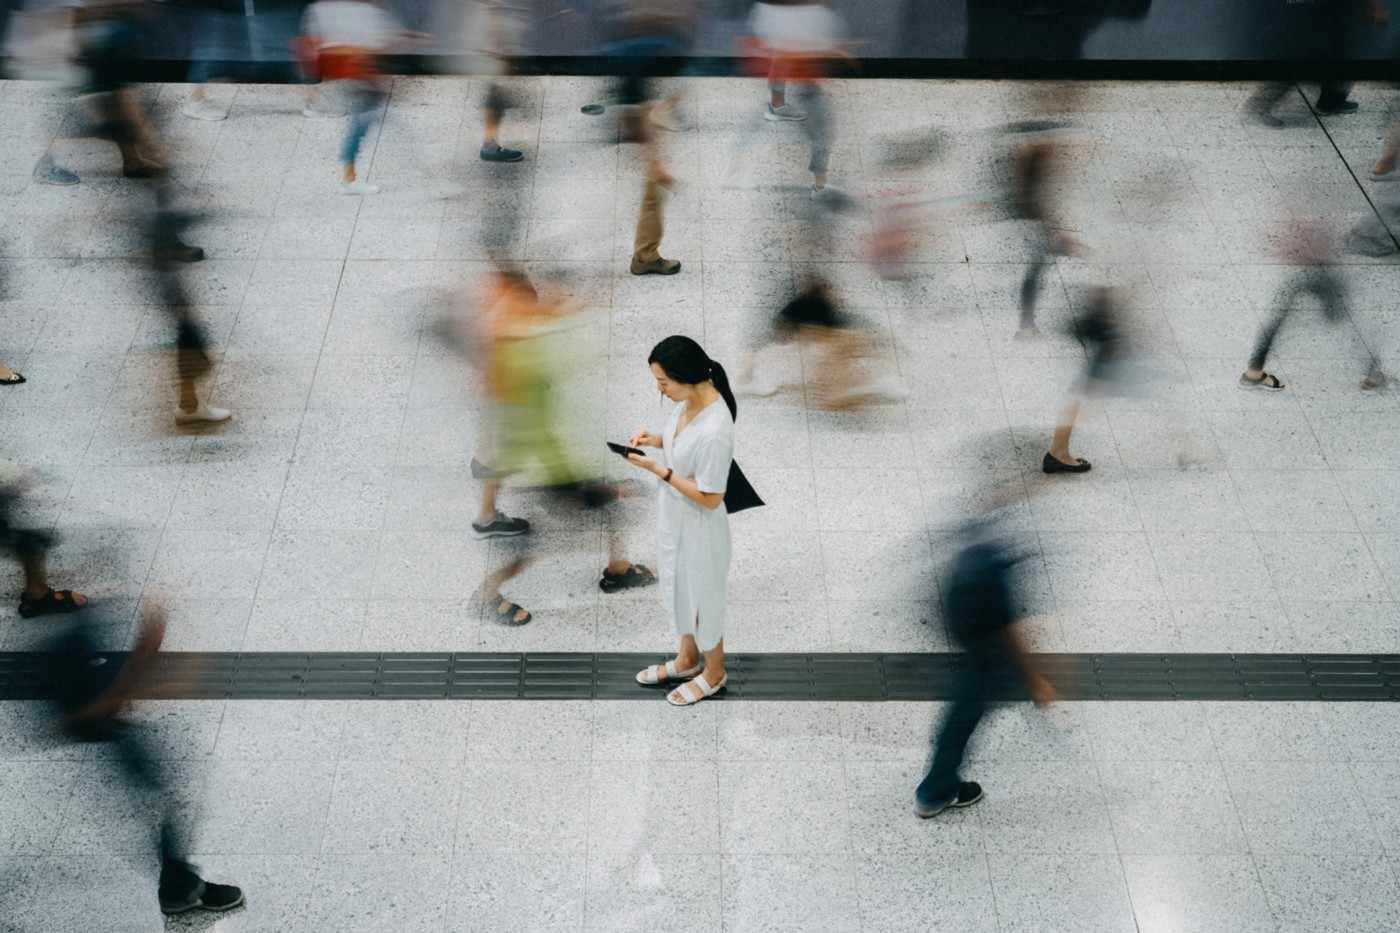 An overhead photo of an Asian woman standing still as blurred people walk by her.